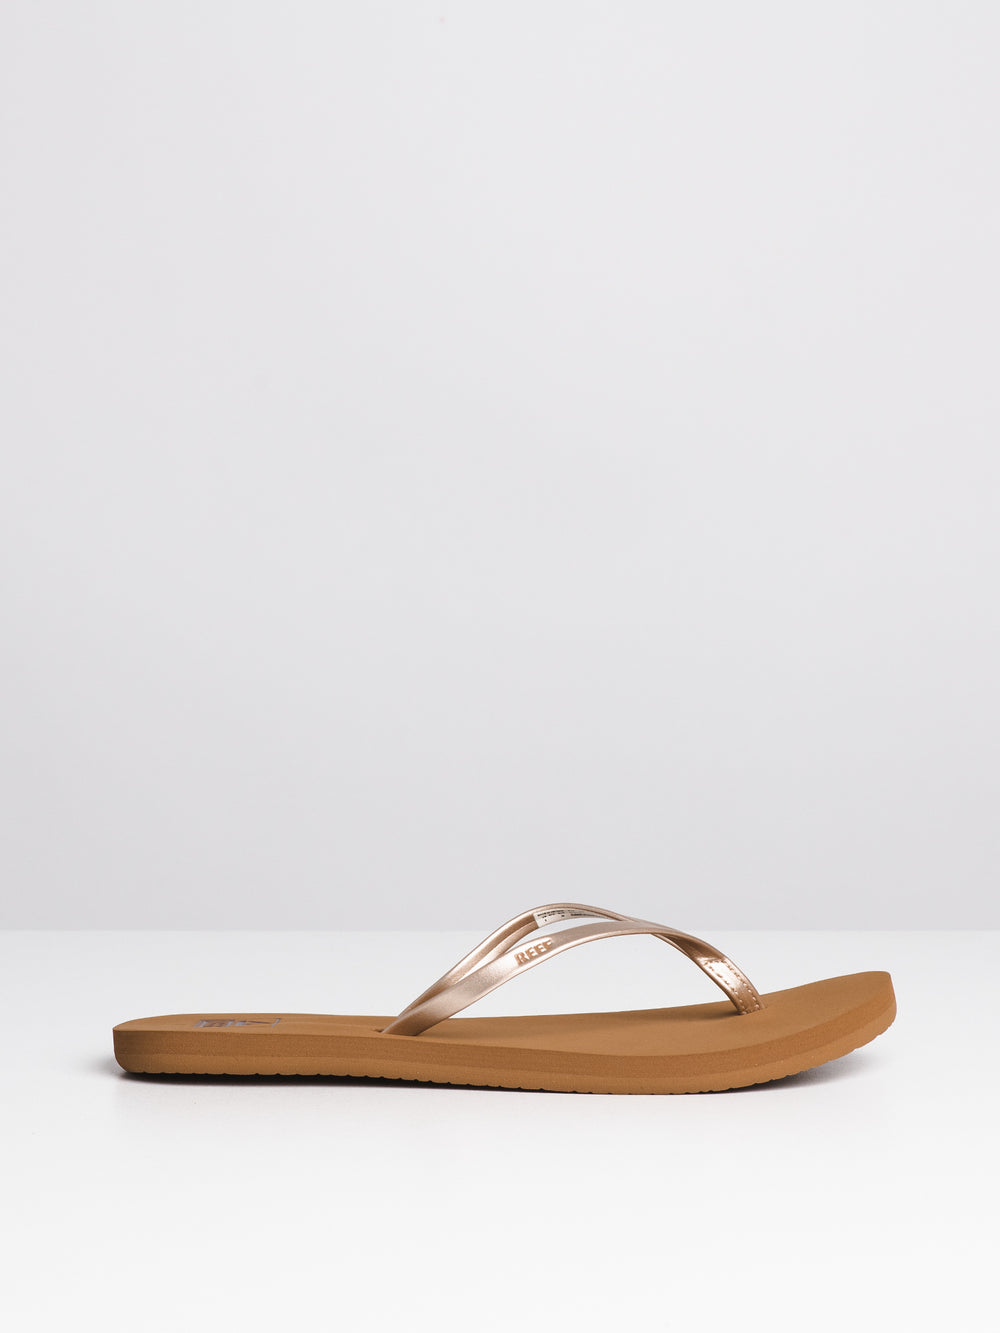 WOMENS BLISS NIGHTS - TAN/CHAMPAGNE